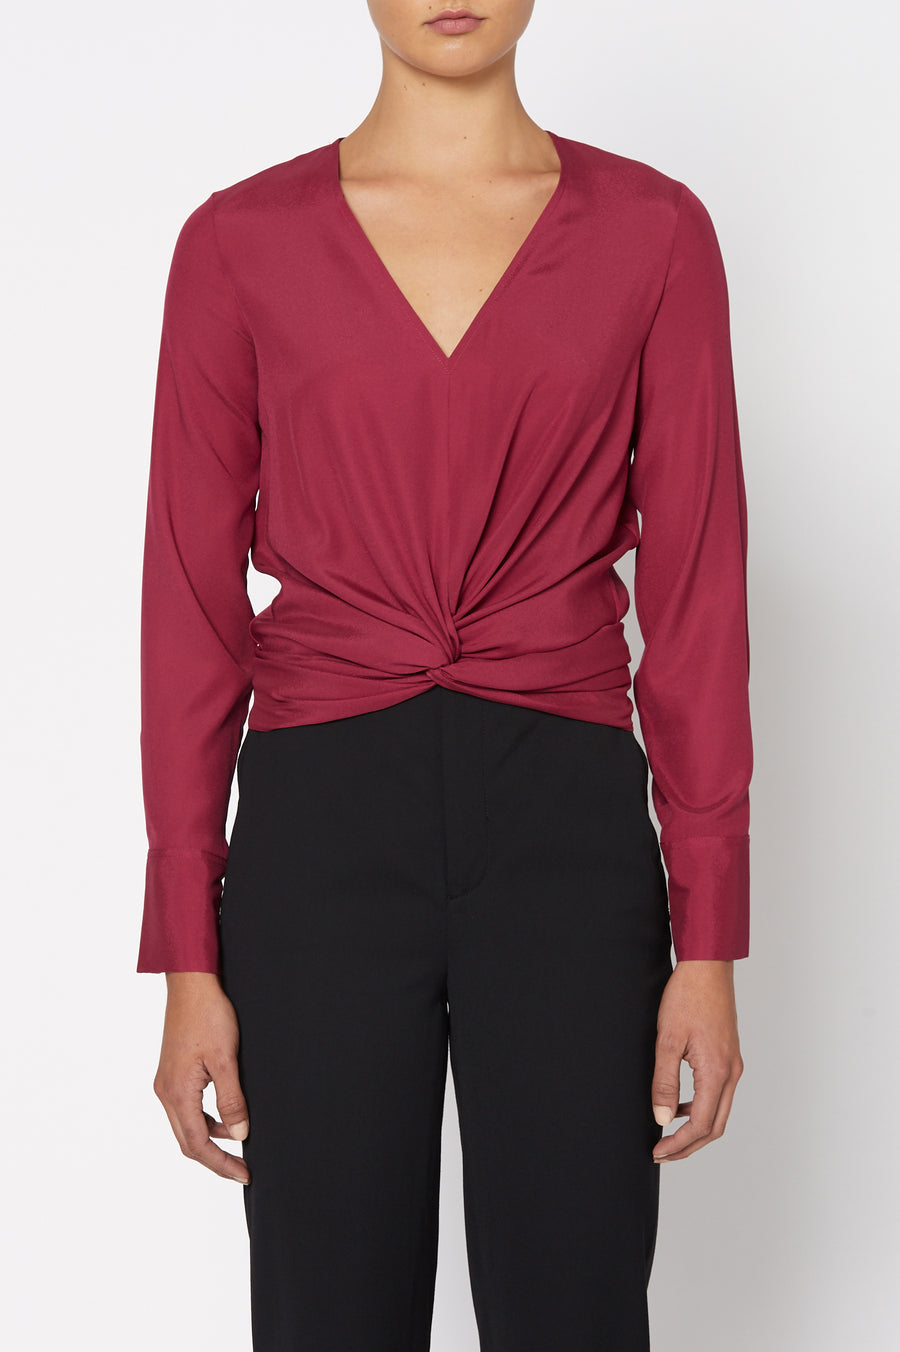 Silk Turban Twist Blouse, cut on the bias, soft drape, v-neck style, long sleeves, front twist detail on waist, color Raspberry